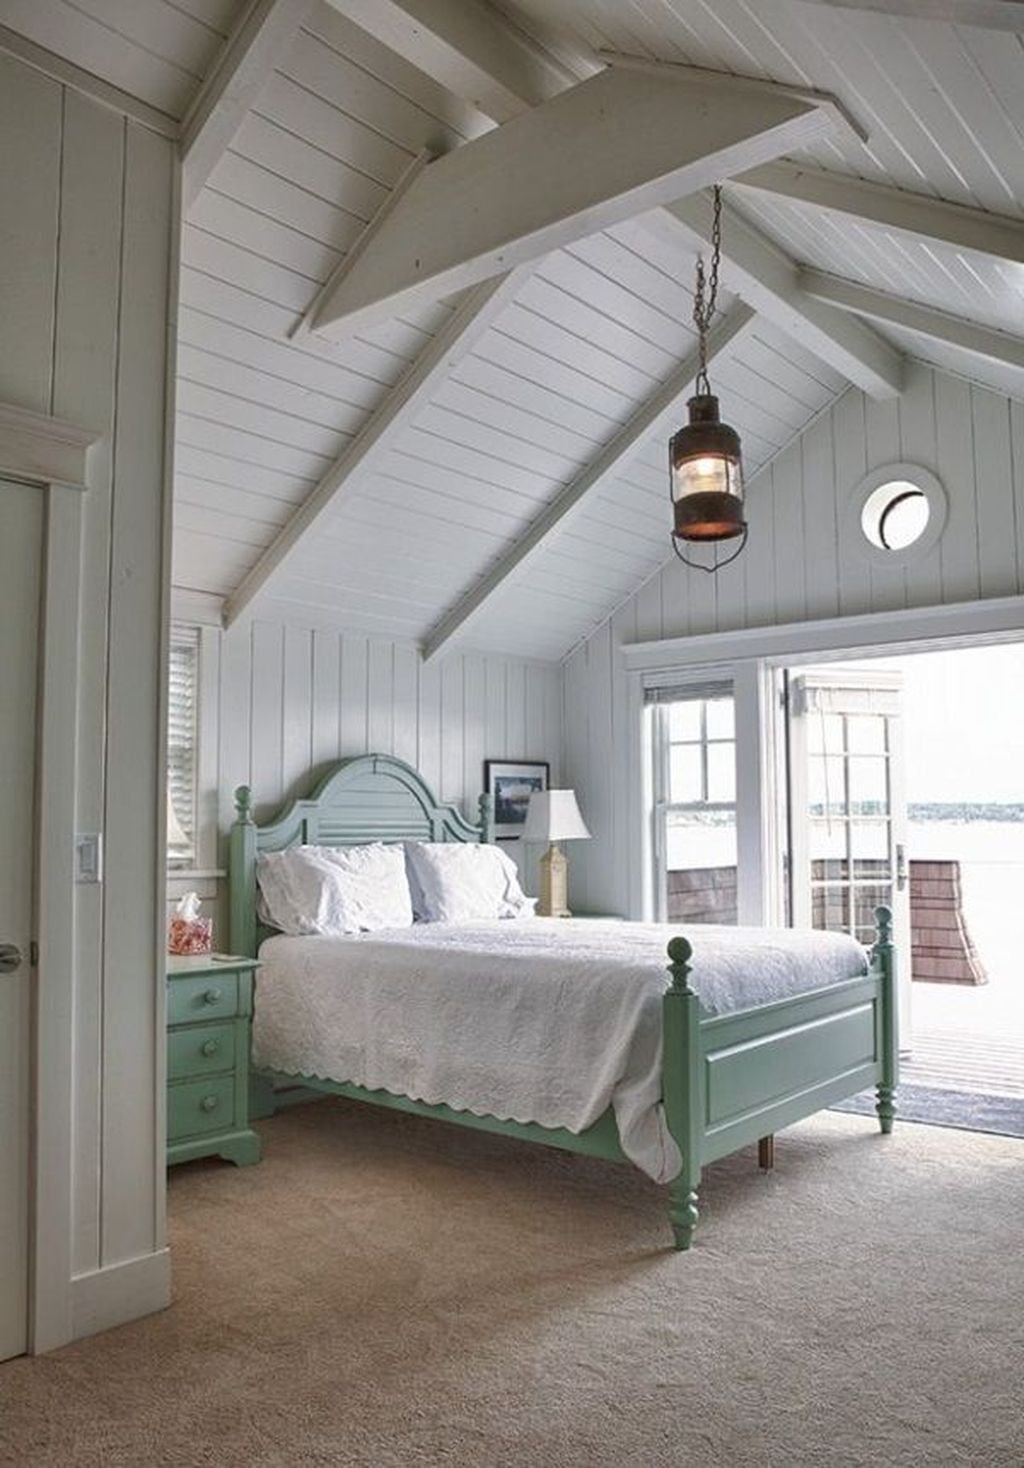 The Best Lake House Bedroom Design And Decor Ideas 01